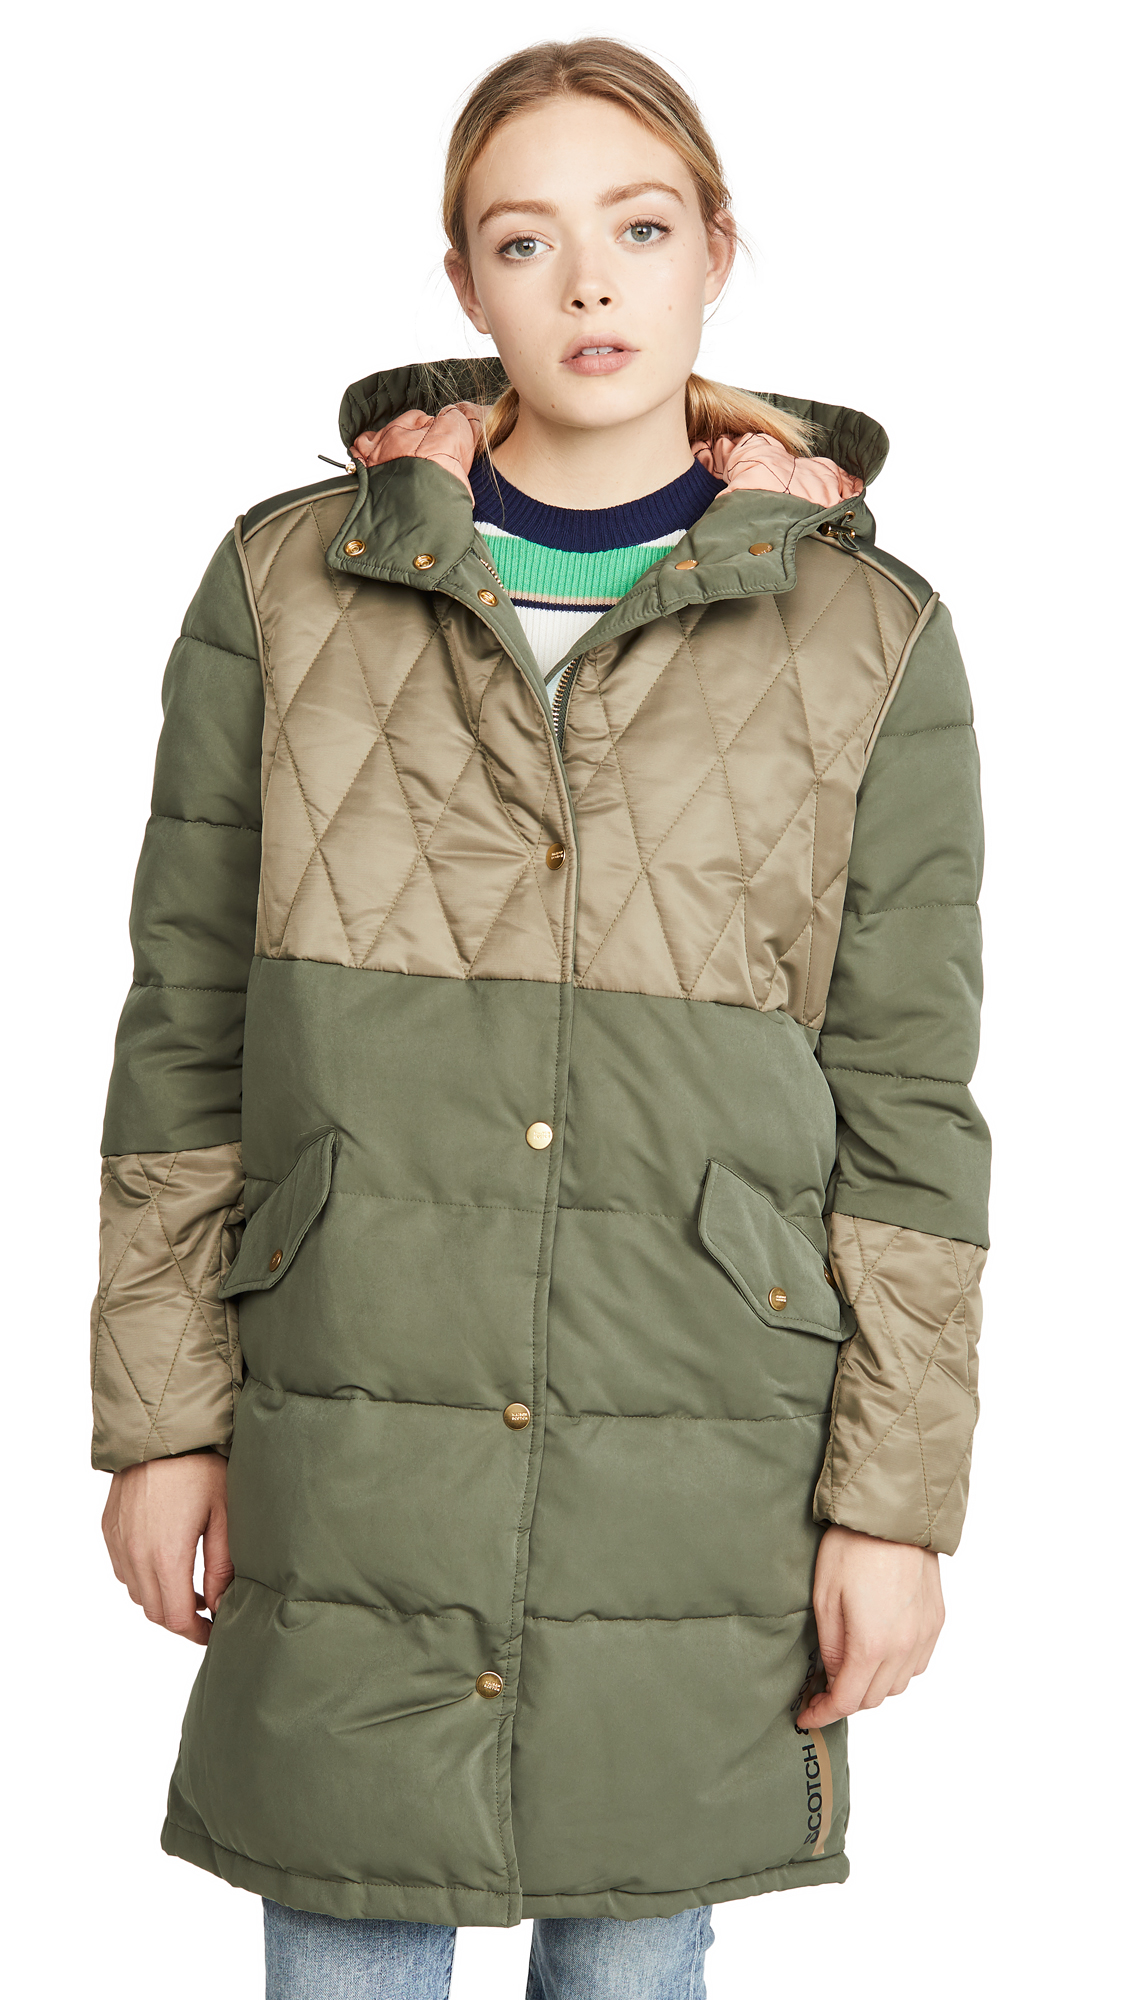 Buy Scotch & Soda/Maison Scotch online - photo of Scotch & Soda/Maison Scotch Mixed Fabric Parka Jacket